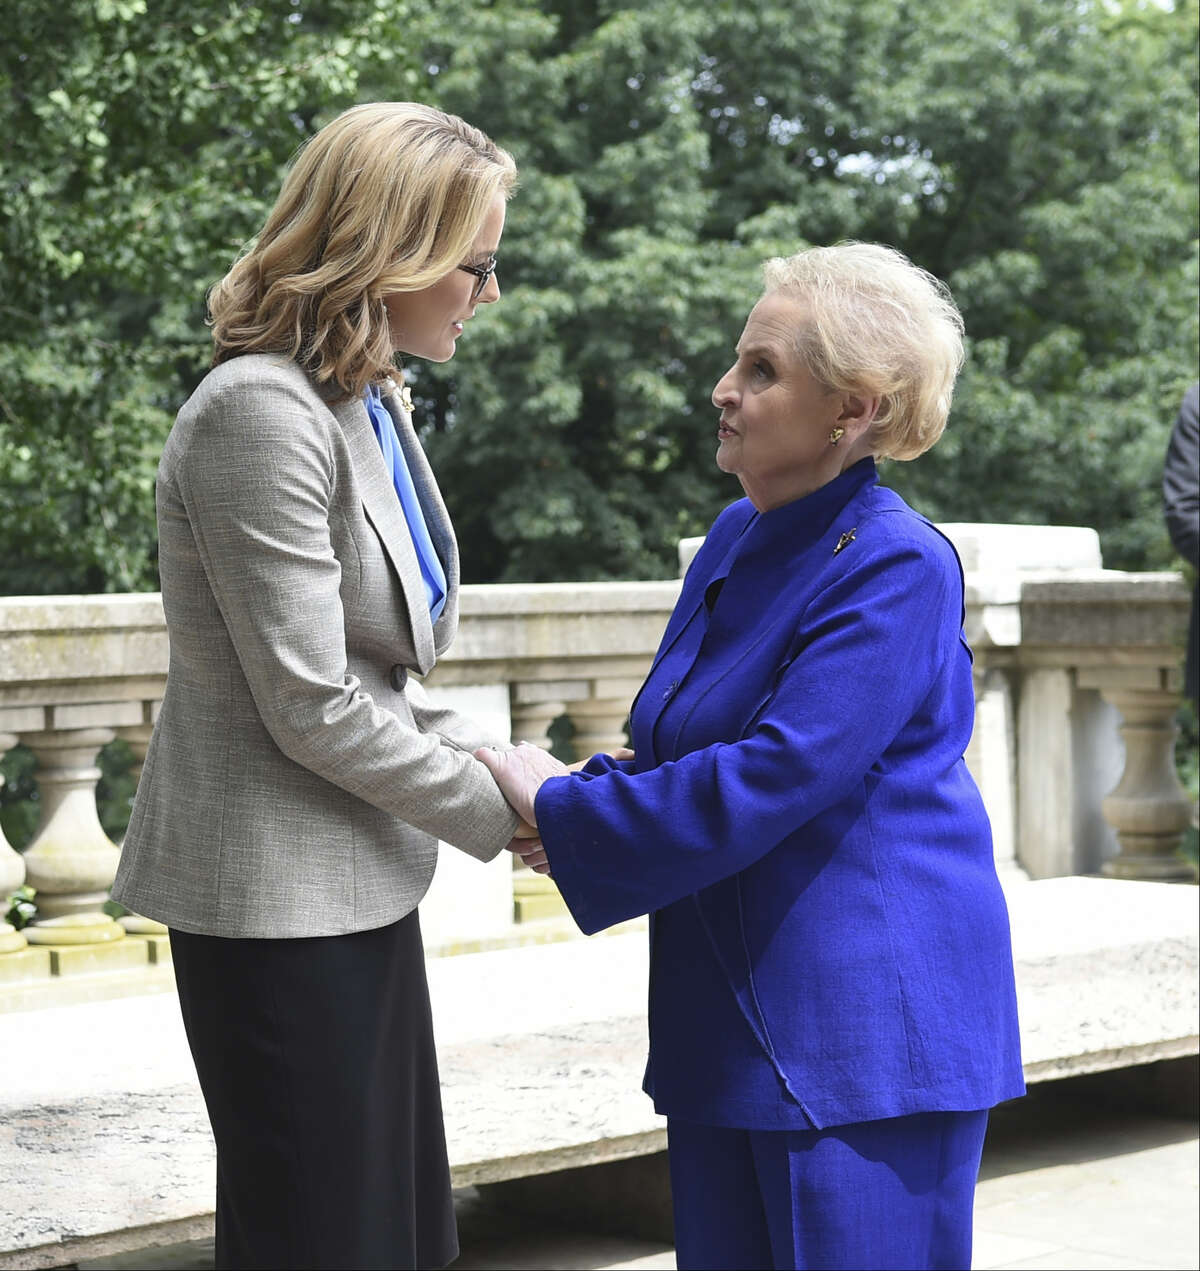 """In this image released by CBS, former Secretary of State Madeleine Albright, right, appears in a scene with actress Tea Leoni, who portrays U.S. Secretary of State Elizabeth McCord in an episode of """"Madam Secretary."""" Albright, 78, took a break from teaching duties at Georgetown University to film a guest shot on the show, airing Sunday, Oct. 11, 2015, at 8 p.m. EDT on CBS."""